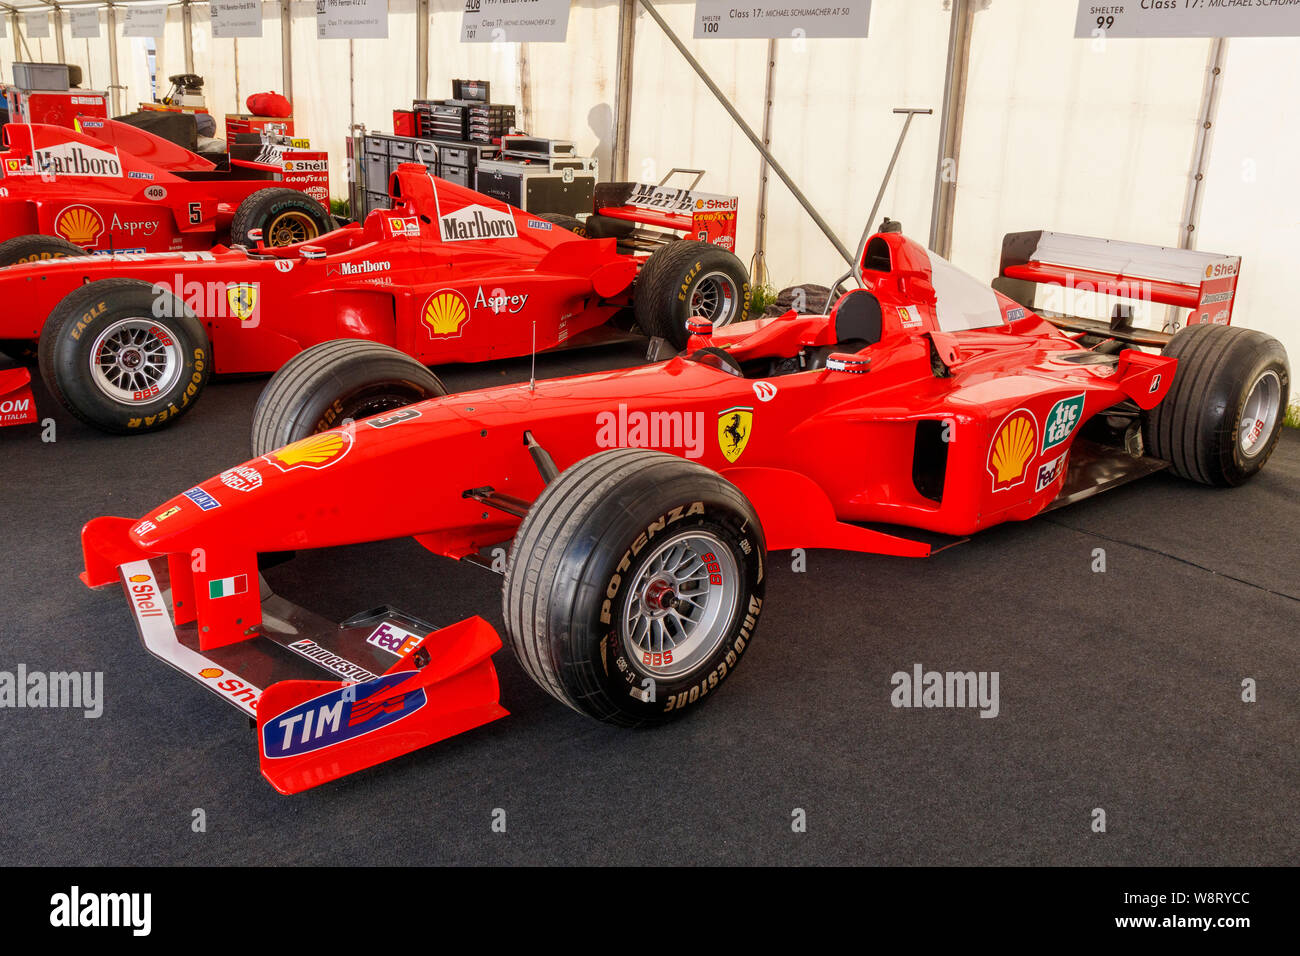 Michael Schumacher S World Championship Winning Ferrari F1 2000 In The Paddock Garage At The 2019 Goodwood Festival Of Speed Sussex Uk Stock Photo Alamy